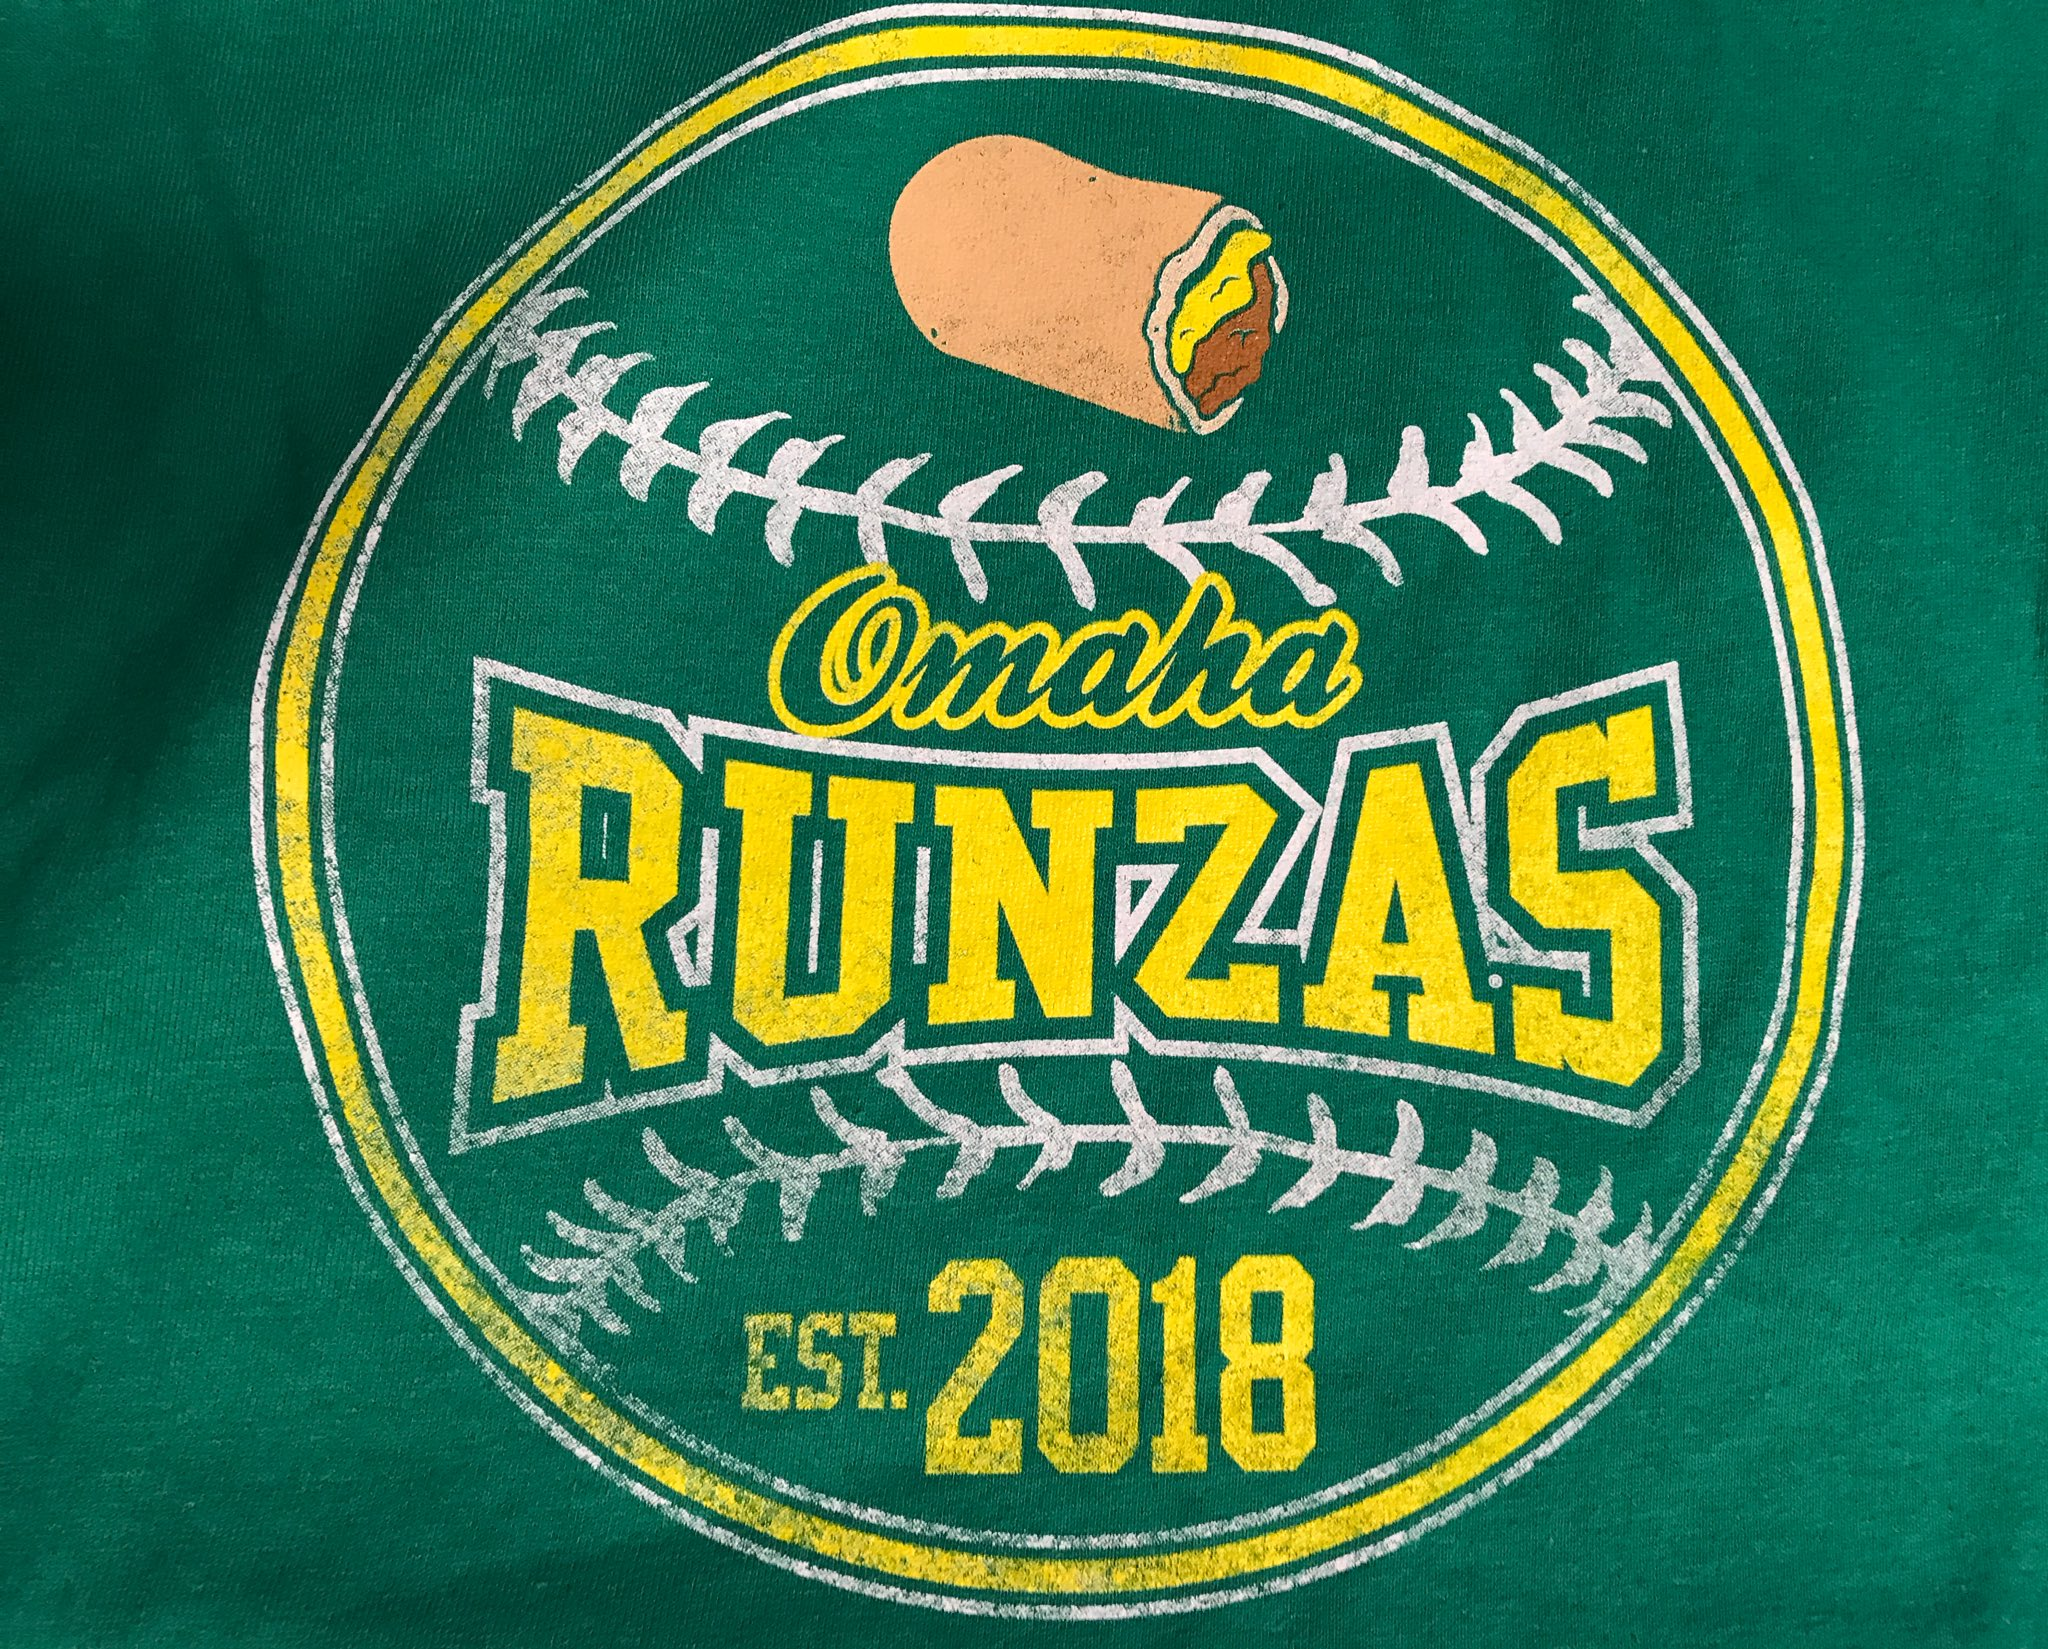 Another food themed promotion in MiLB – The Dutch Baseball Hangout